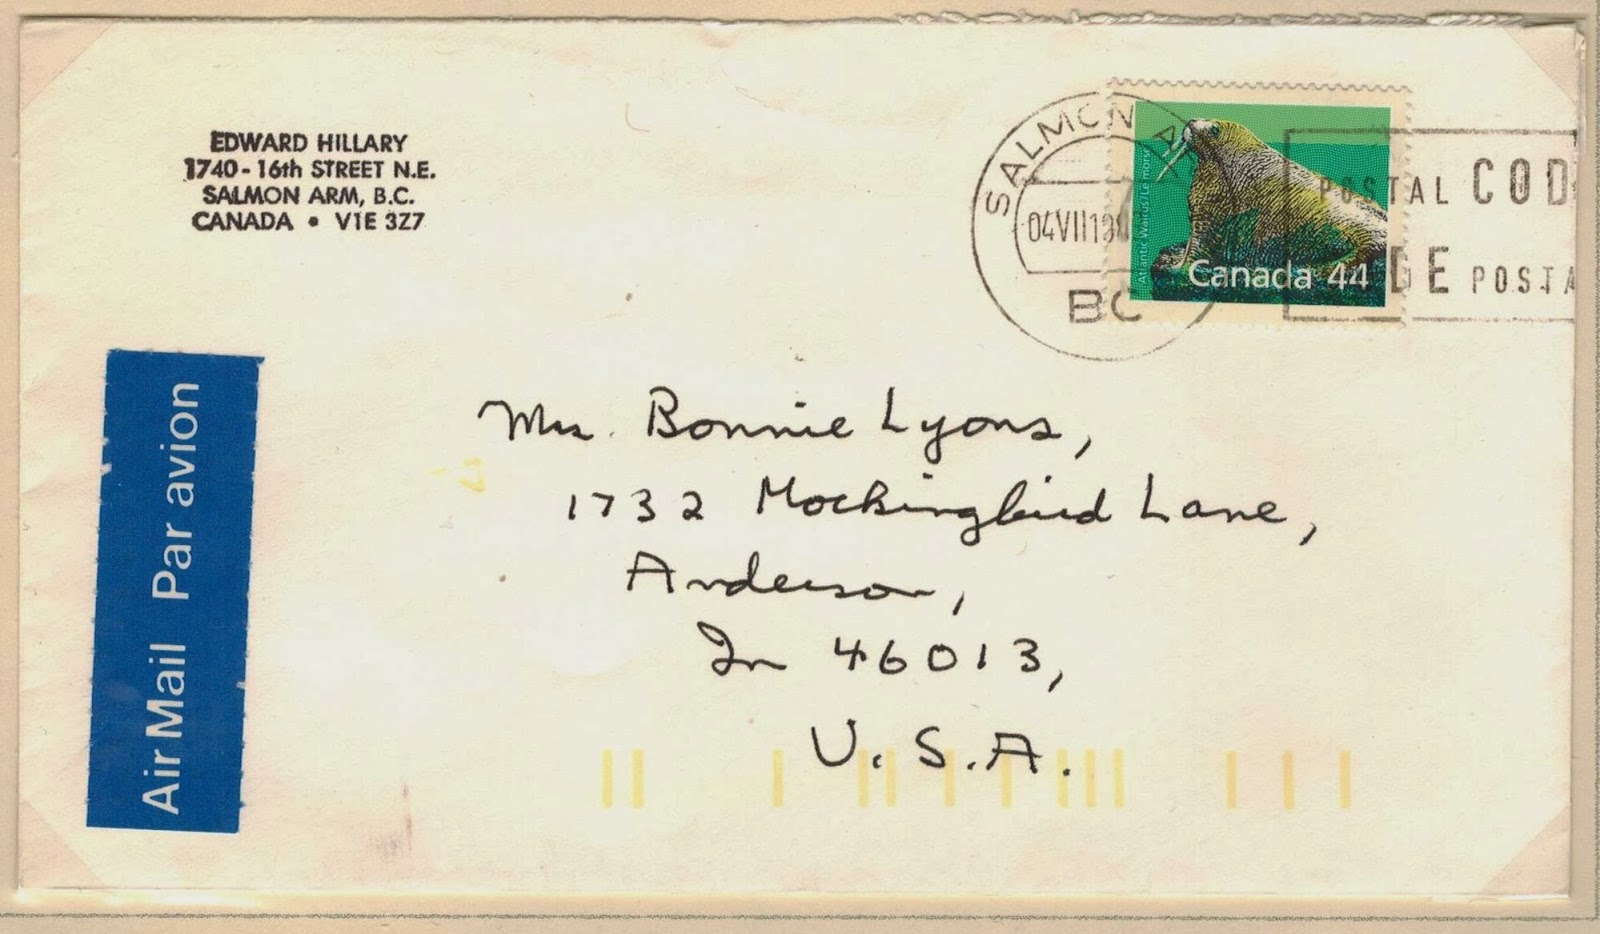 Postal History Corner: 3. United States Letter Rates: 1851 to the